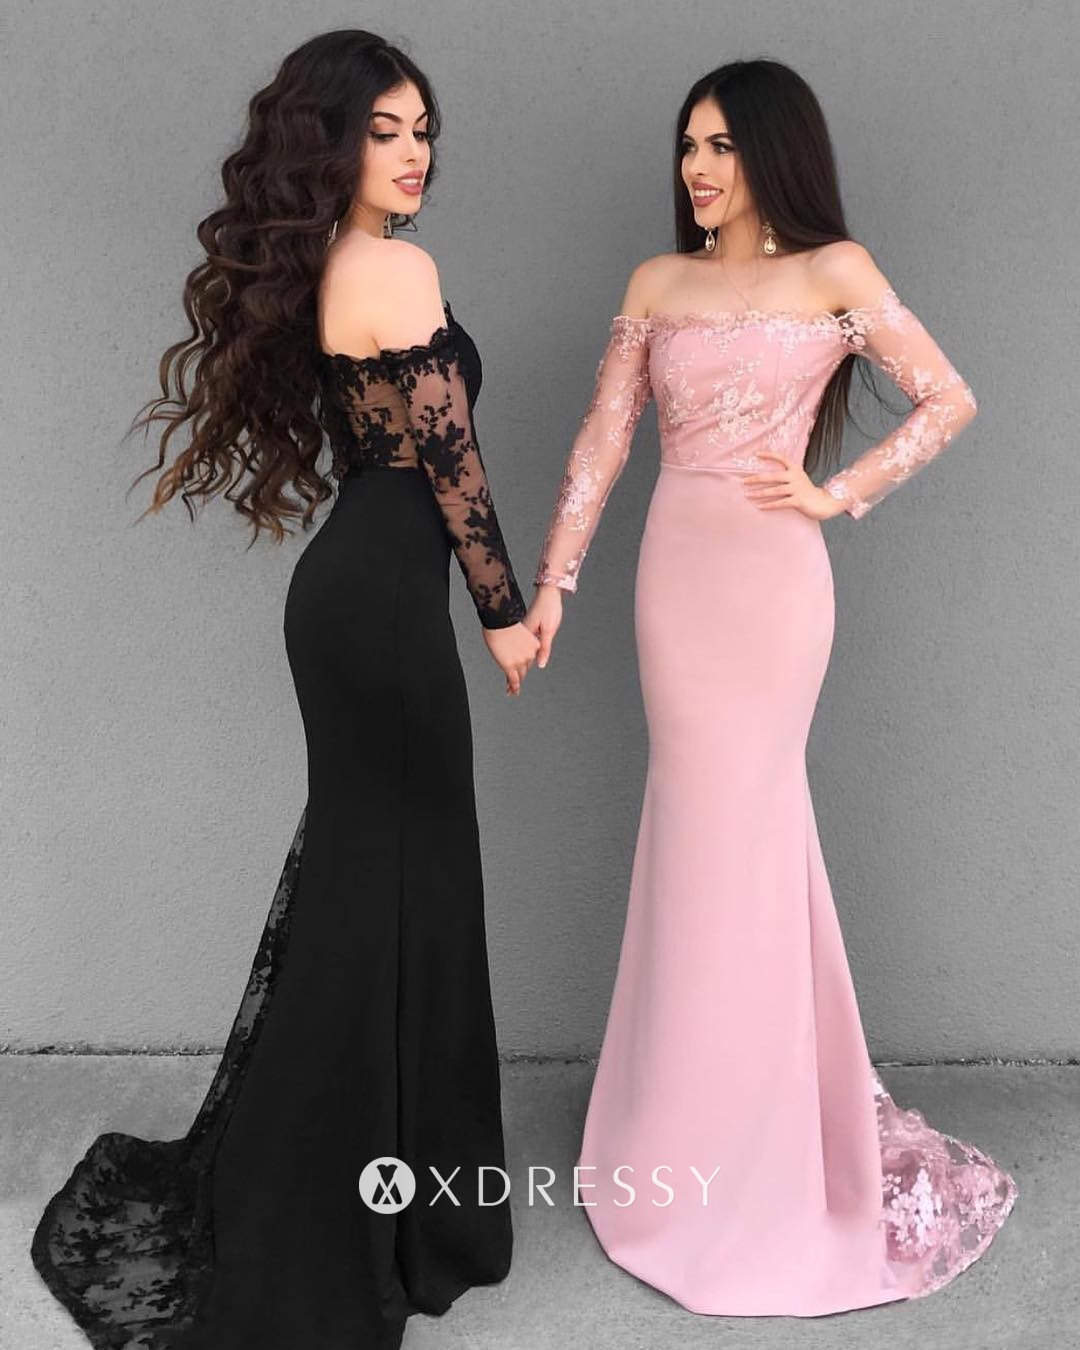 Illusion Lace Off Shoulder Long Sleeve Prom Dress Xdressy,Plus Size Black Dress For Wedding Guest